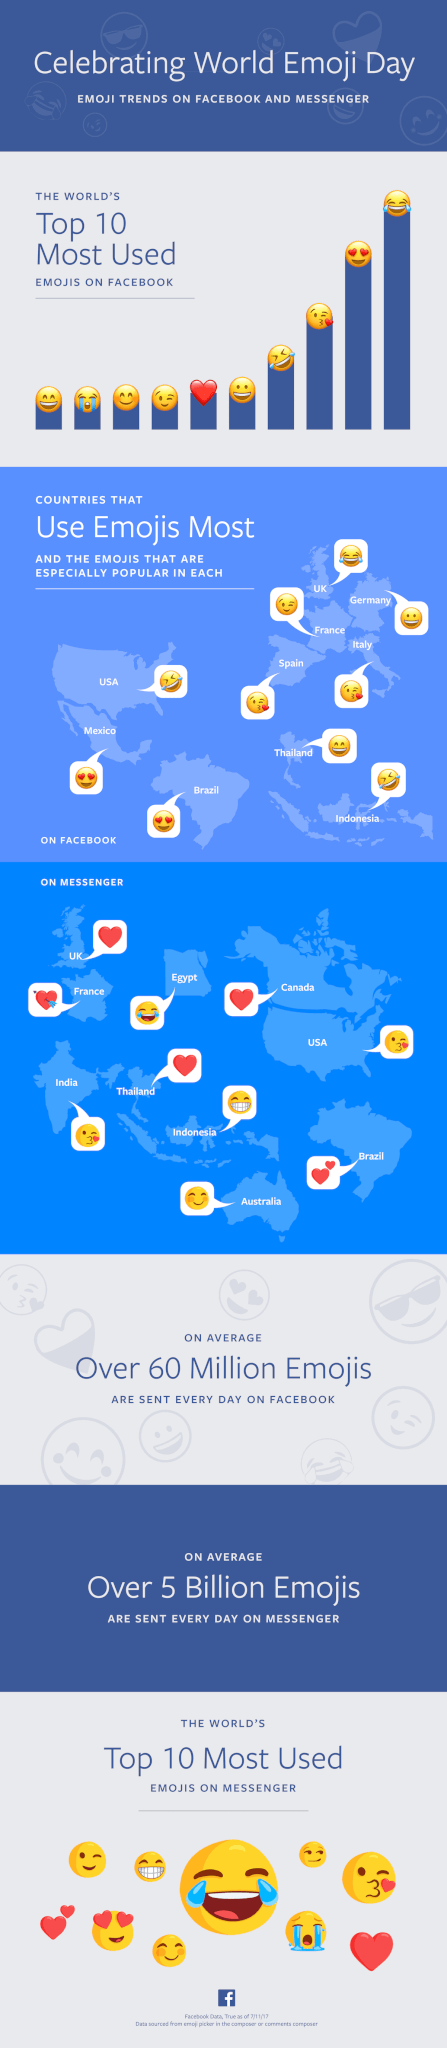 World Emoji Day Infographic_v9